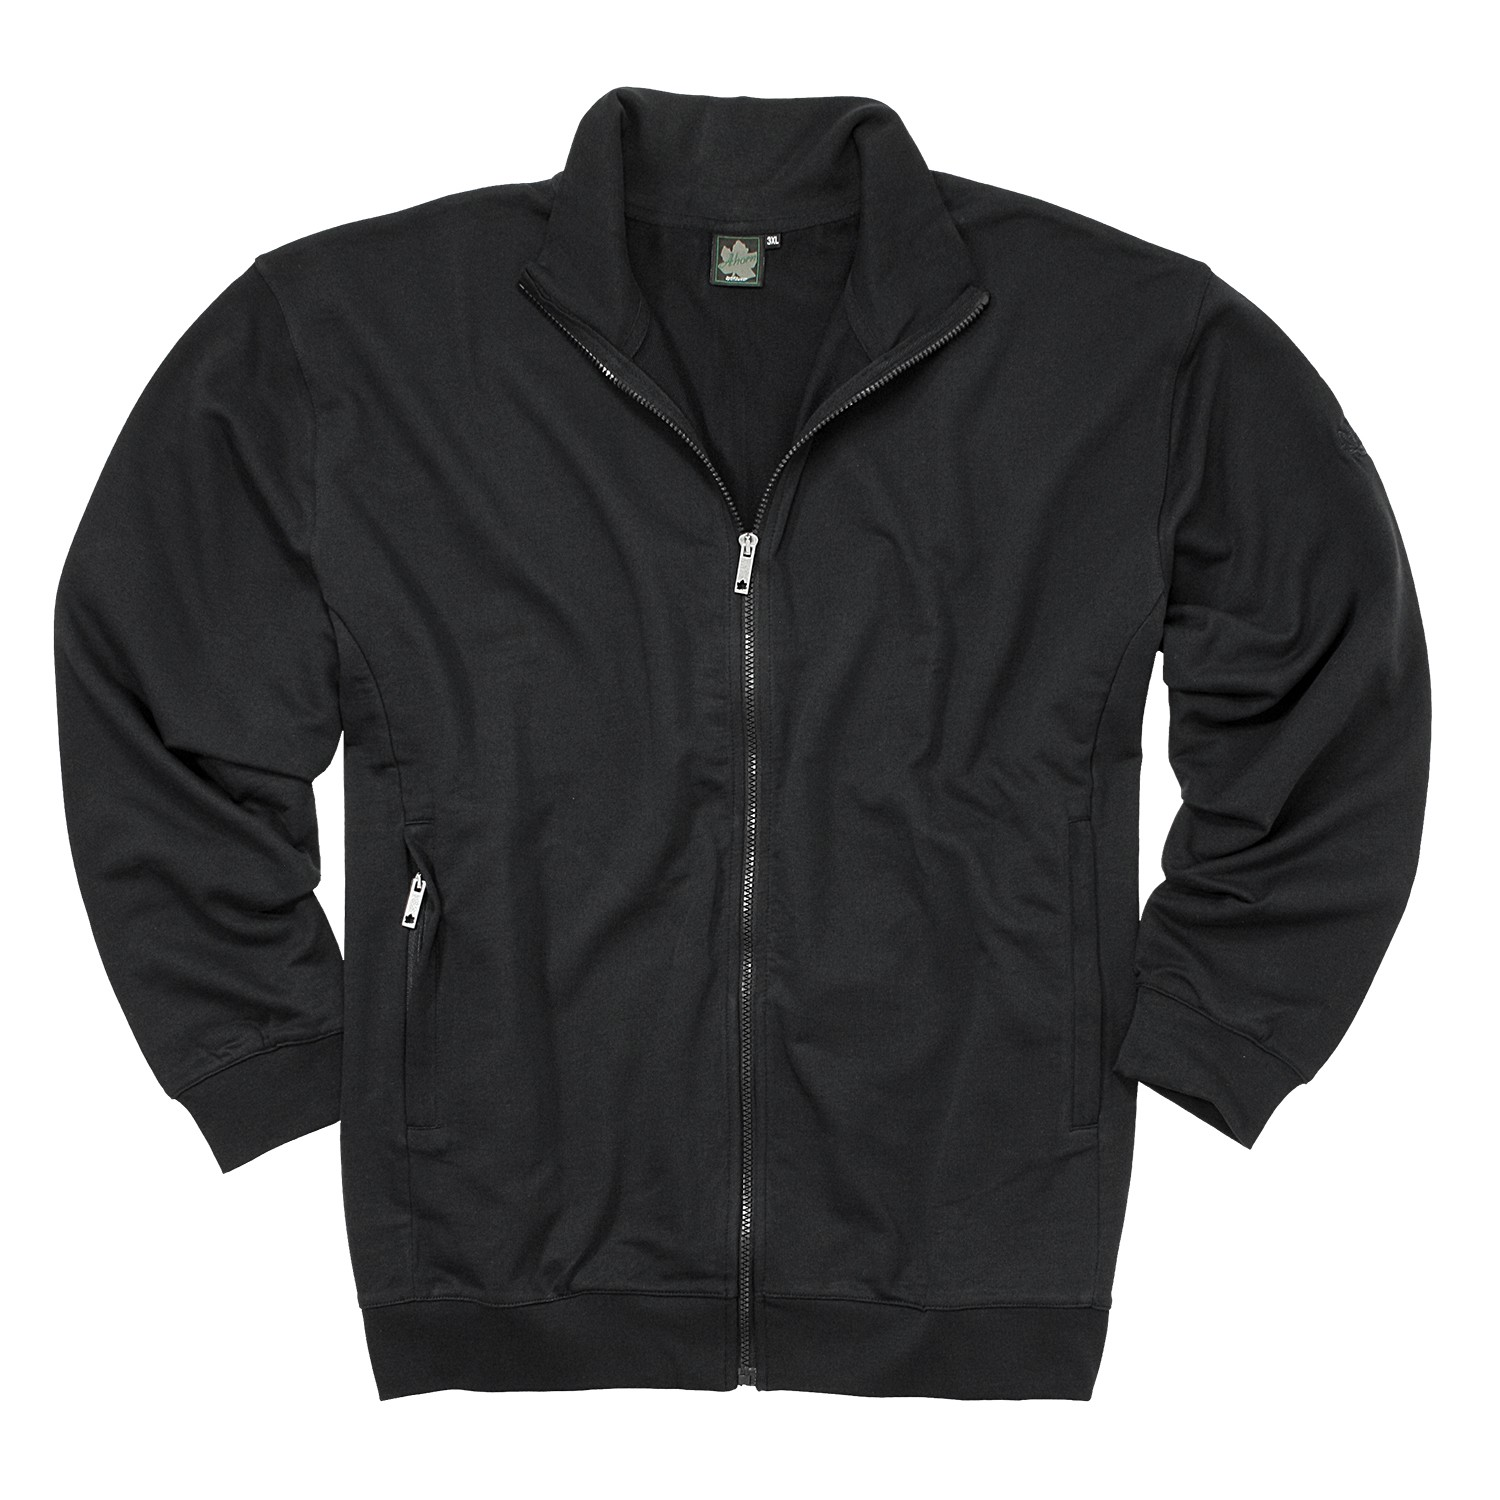 Detail Image to Sweat jacket in black by Ahorn Sportswear up to oversize 10XL